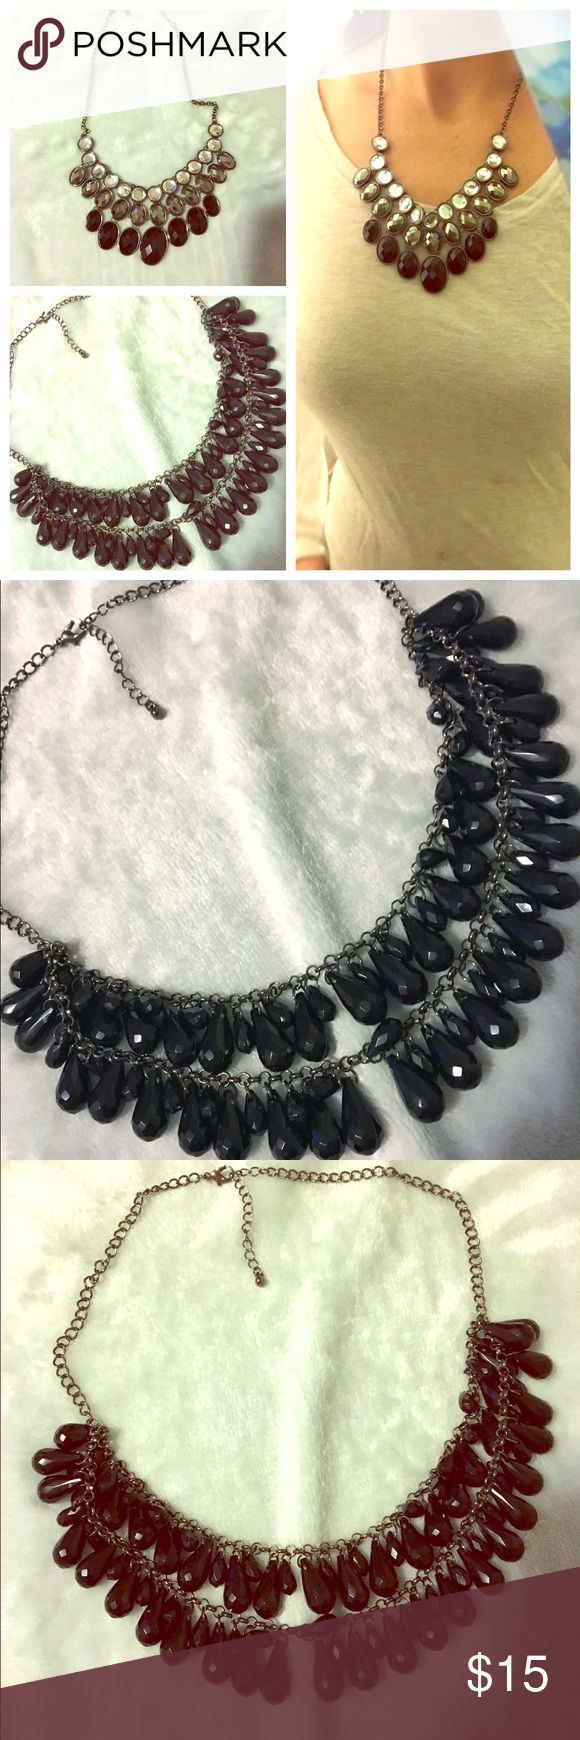 Black statement necklace bundle Black statement necklace bundle. Black necklaces with both pewter settings. Rhinestone necklace with silver, pewter, and black rhinestone statement necklace. Worn only once excellent condition. From charming Charlie. Black teardrop double layer necklace. From forever 21. Never worn. Charming Charlie Jewelry Necklaces